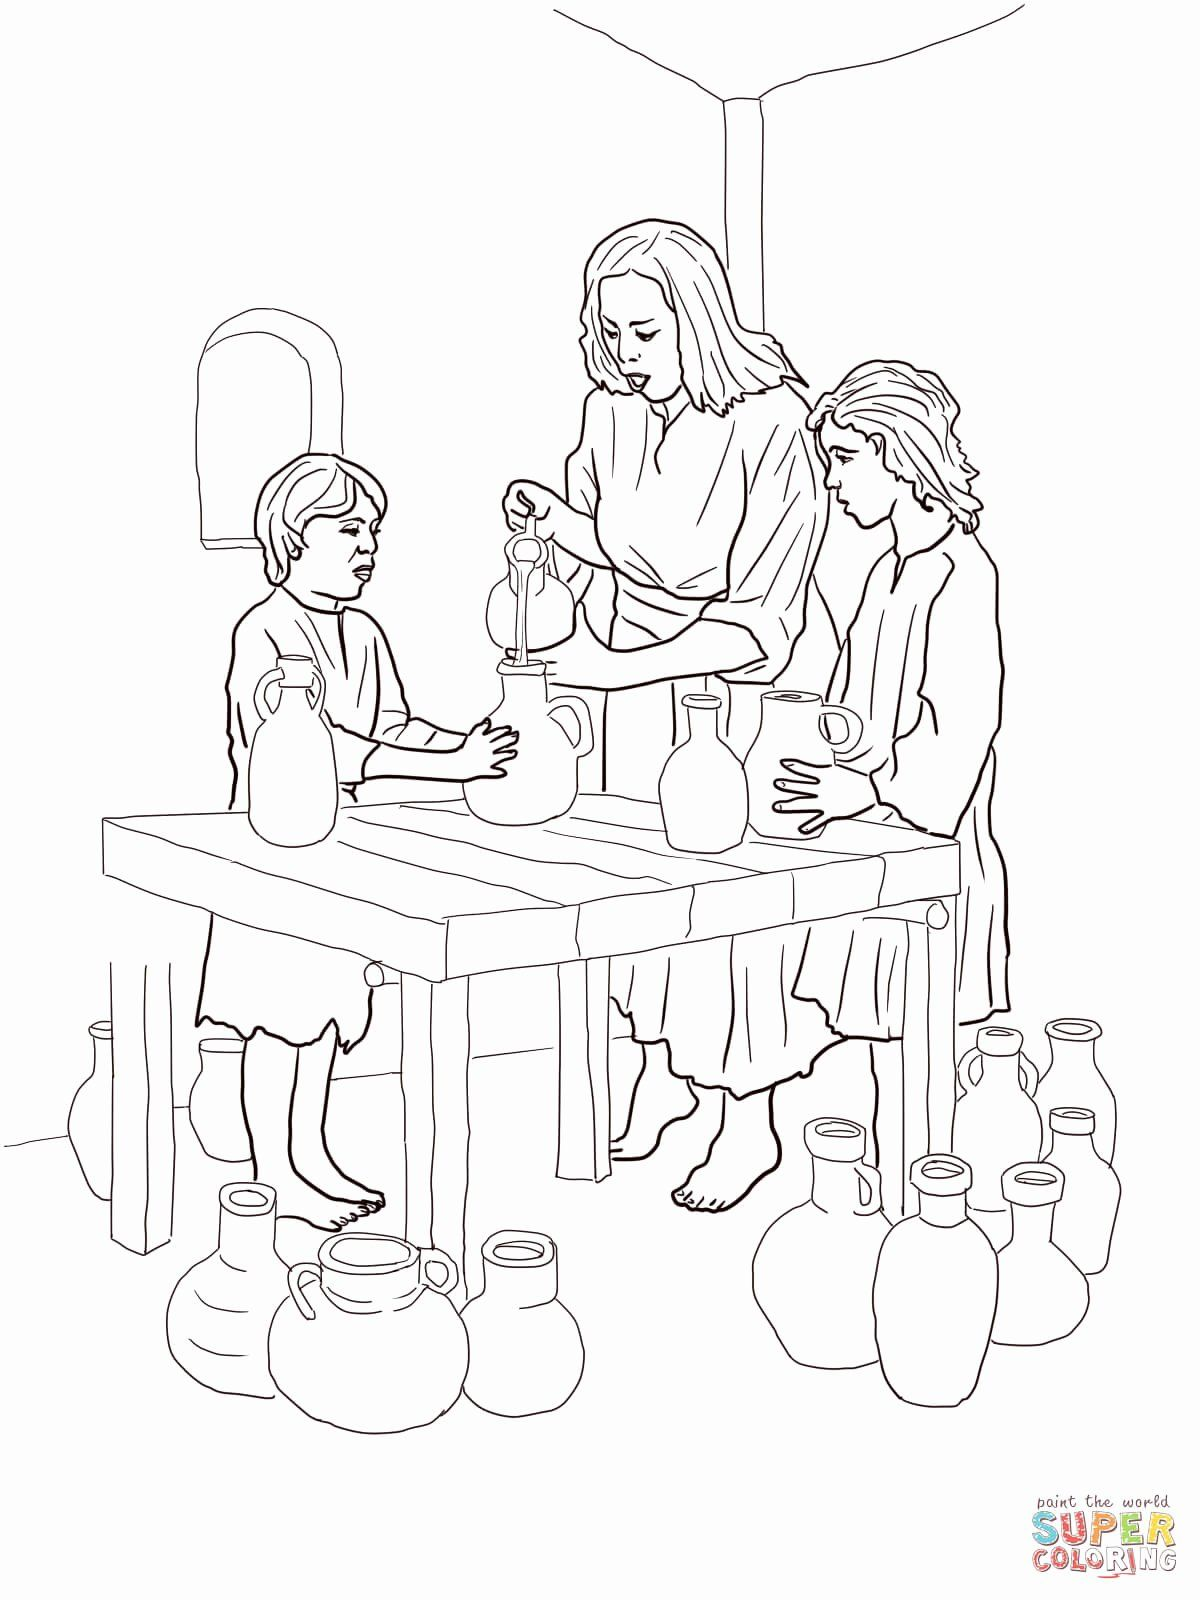 Elijah And The Widow Coloring Page Fresh Elijah And Widow Coloring Sheet Coloring Pages Bible Coloring Pages Elijah And The Widow Coloring Pages